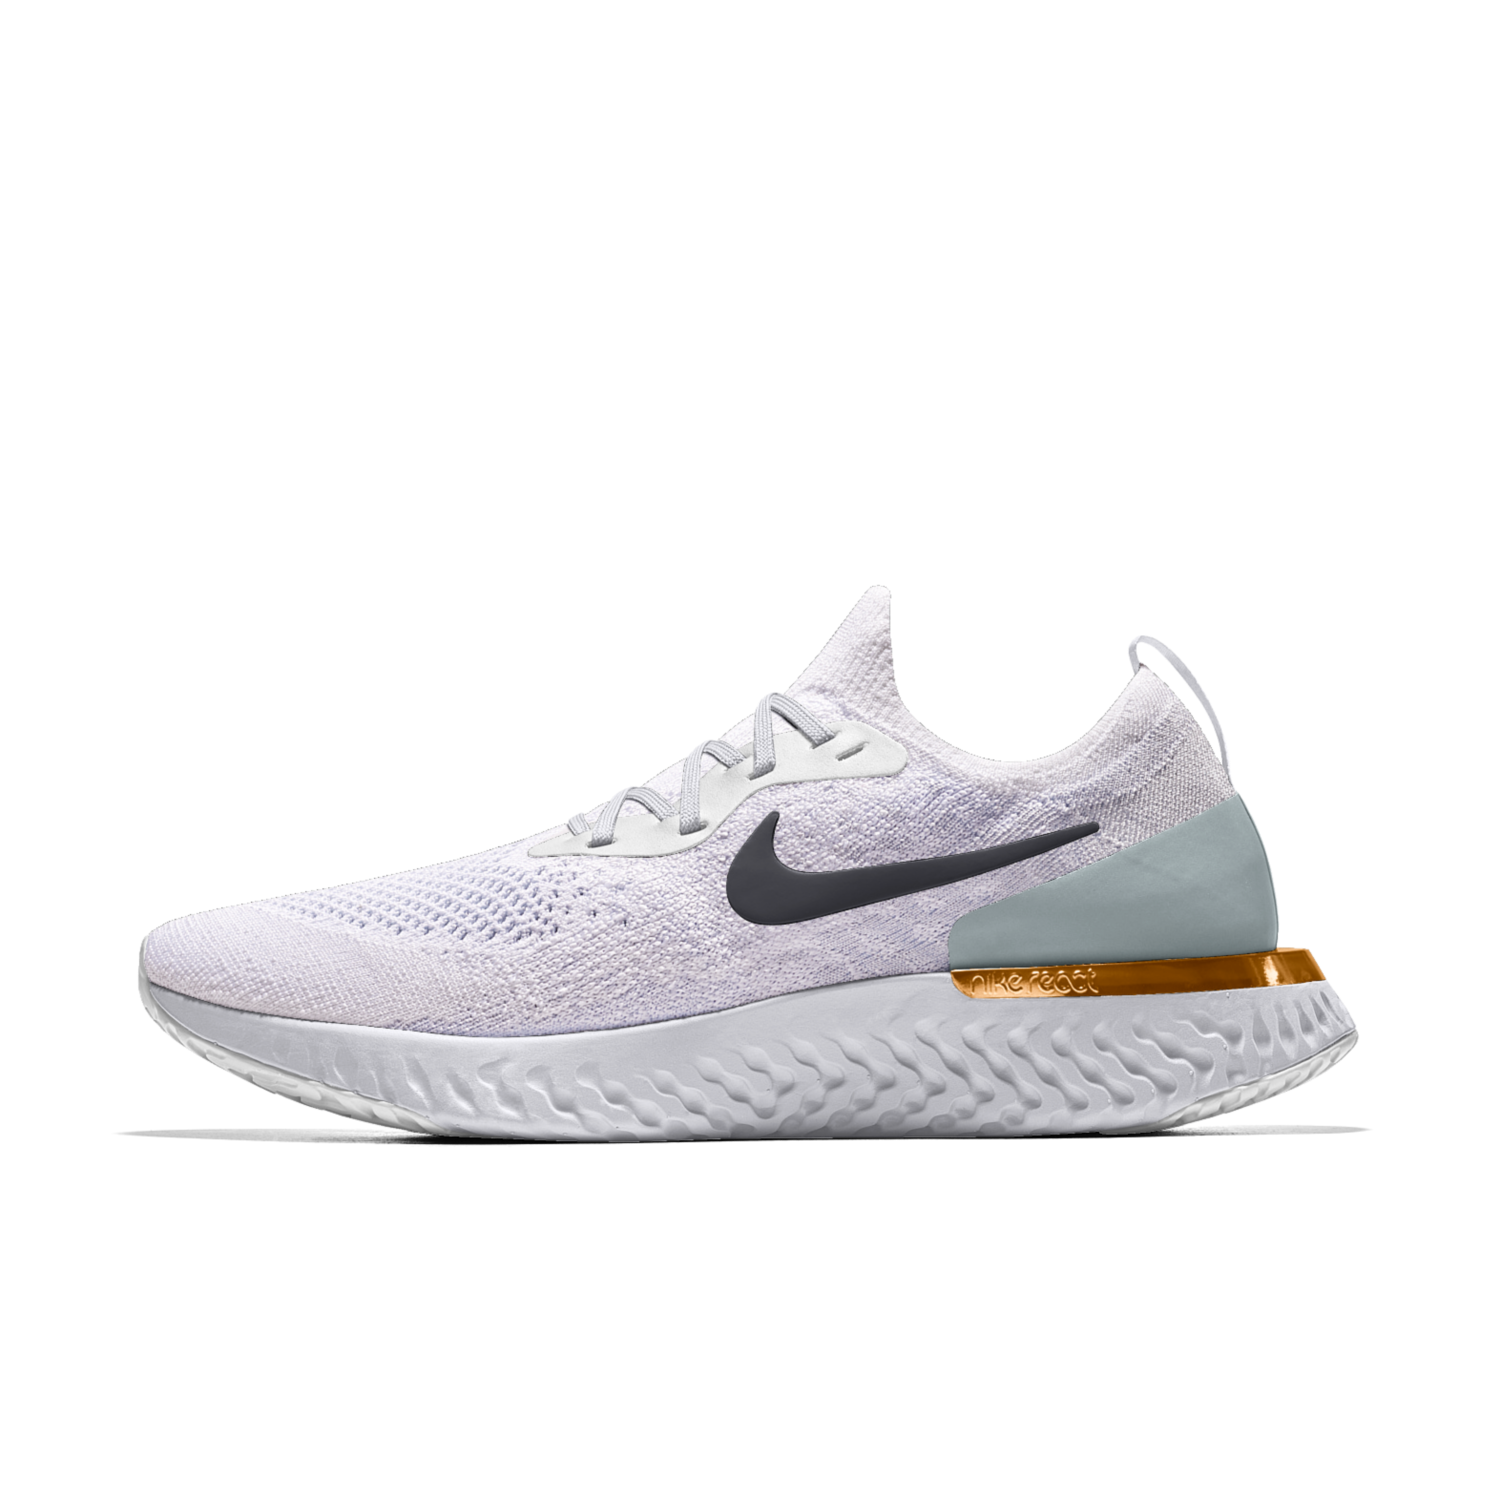 7adb12a79187 Nike Epic React Flyknit iD Running Shoe. Nike.com UK